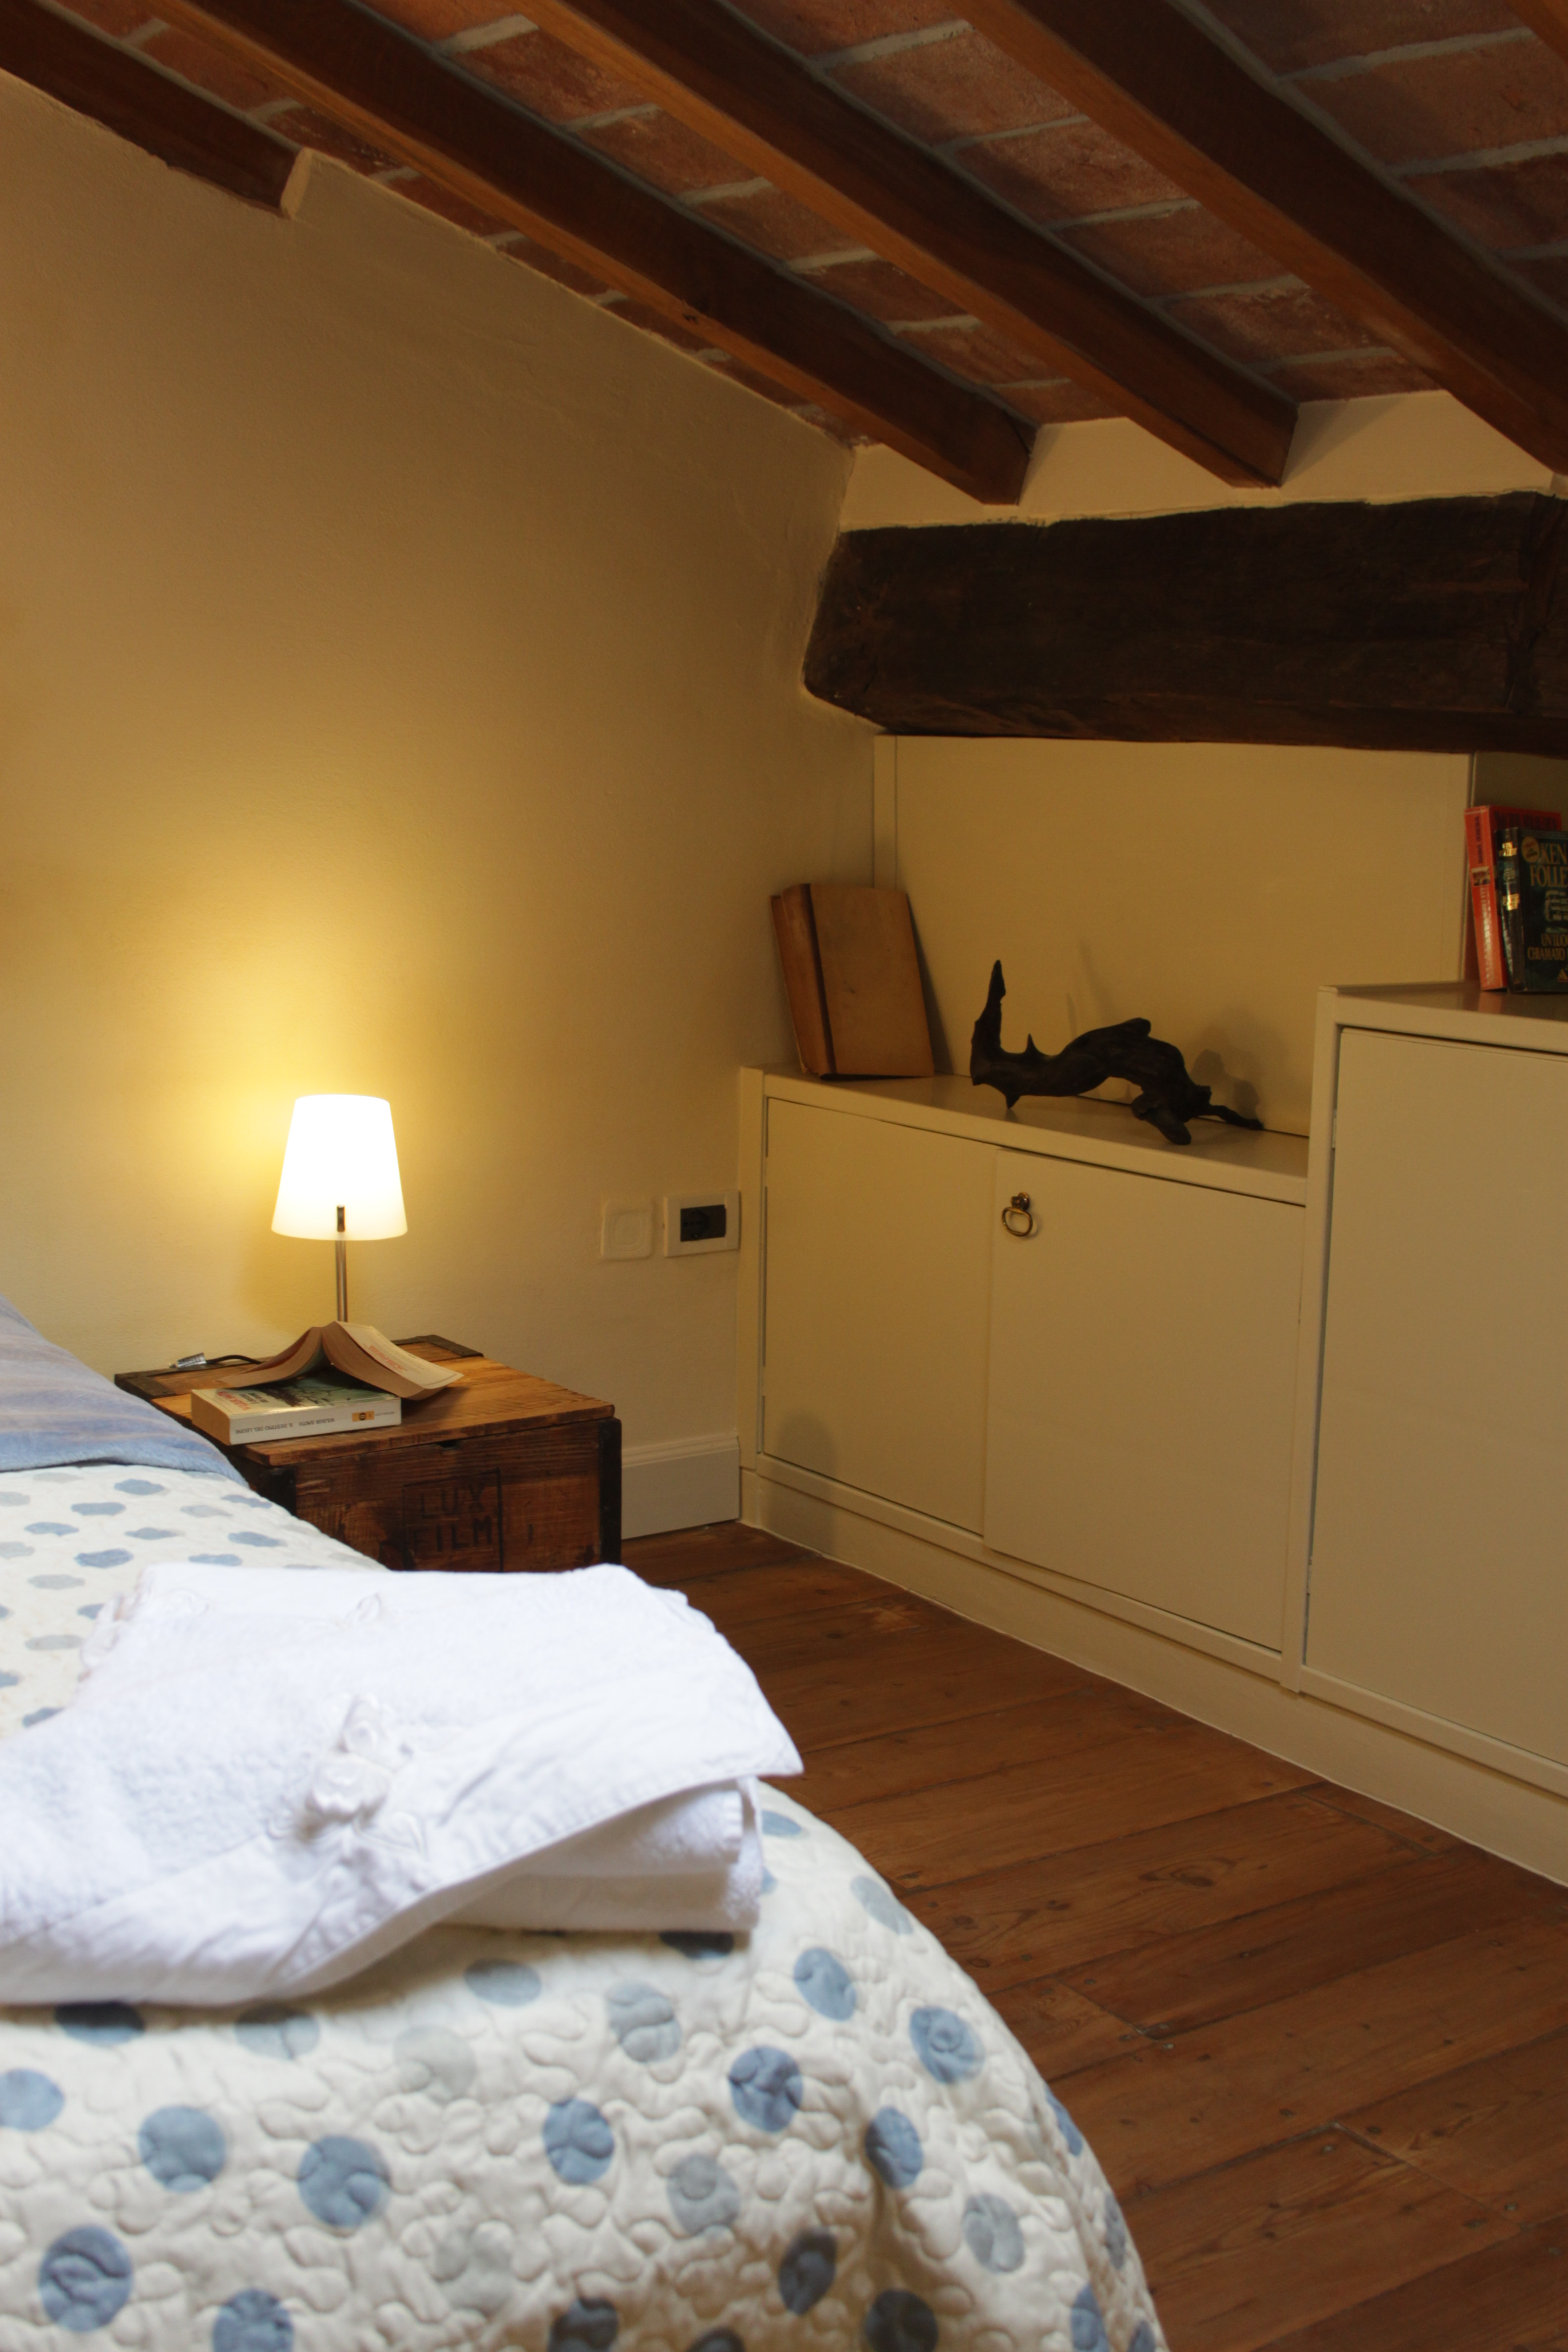 https://www.in-lombardia.it/sites/default/files/accomodation/gallery/104651/19617/letto.jpg